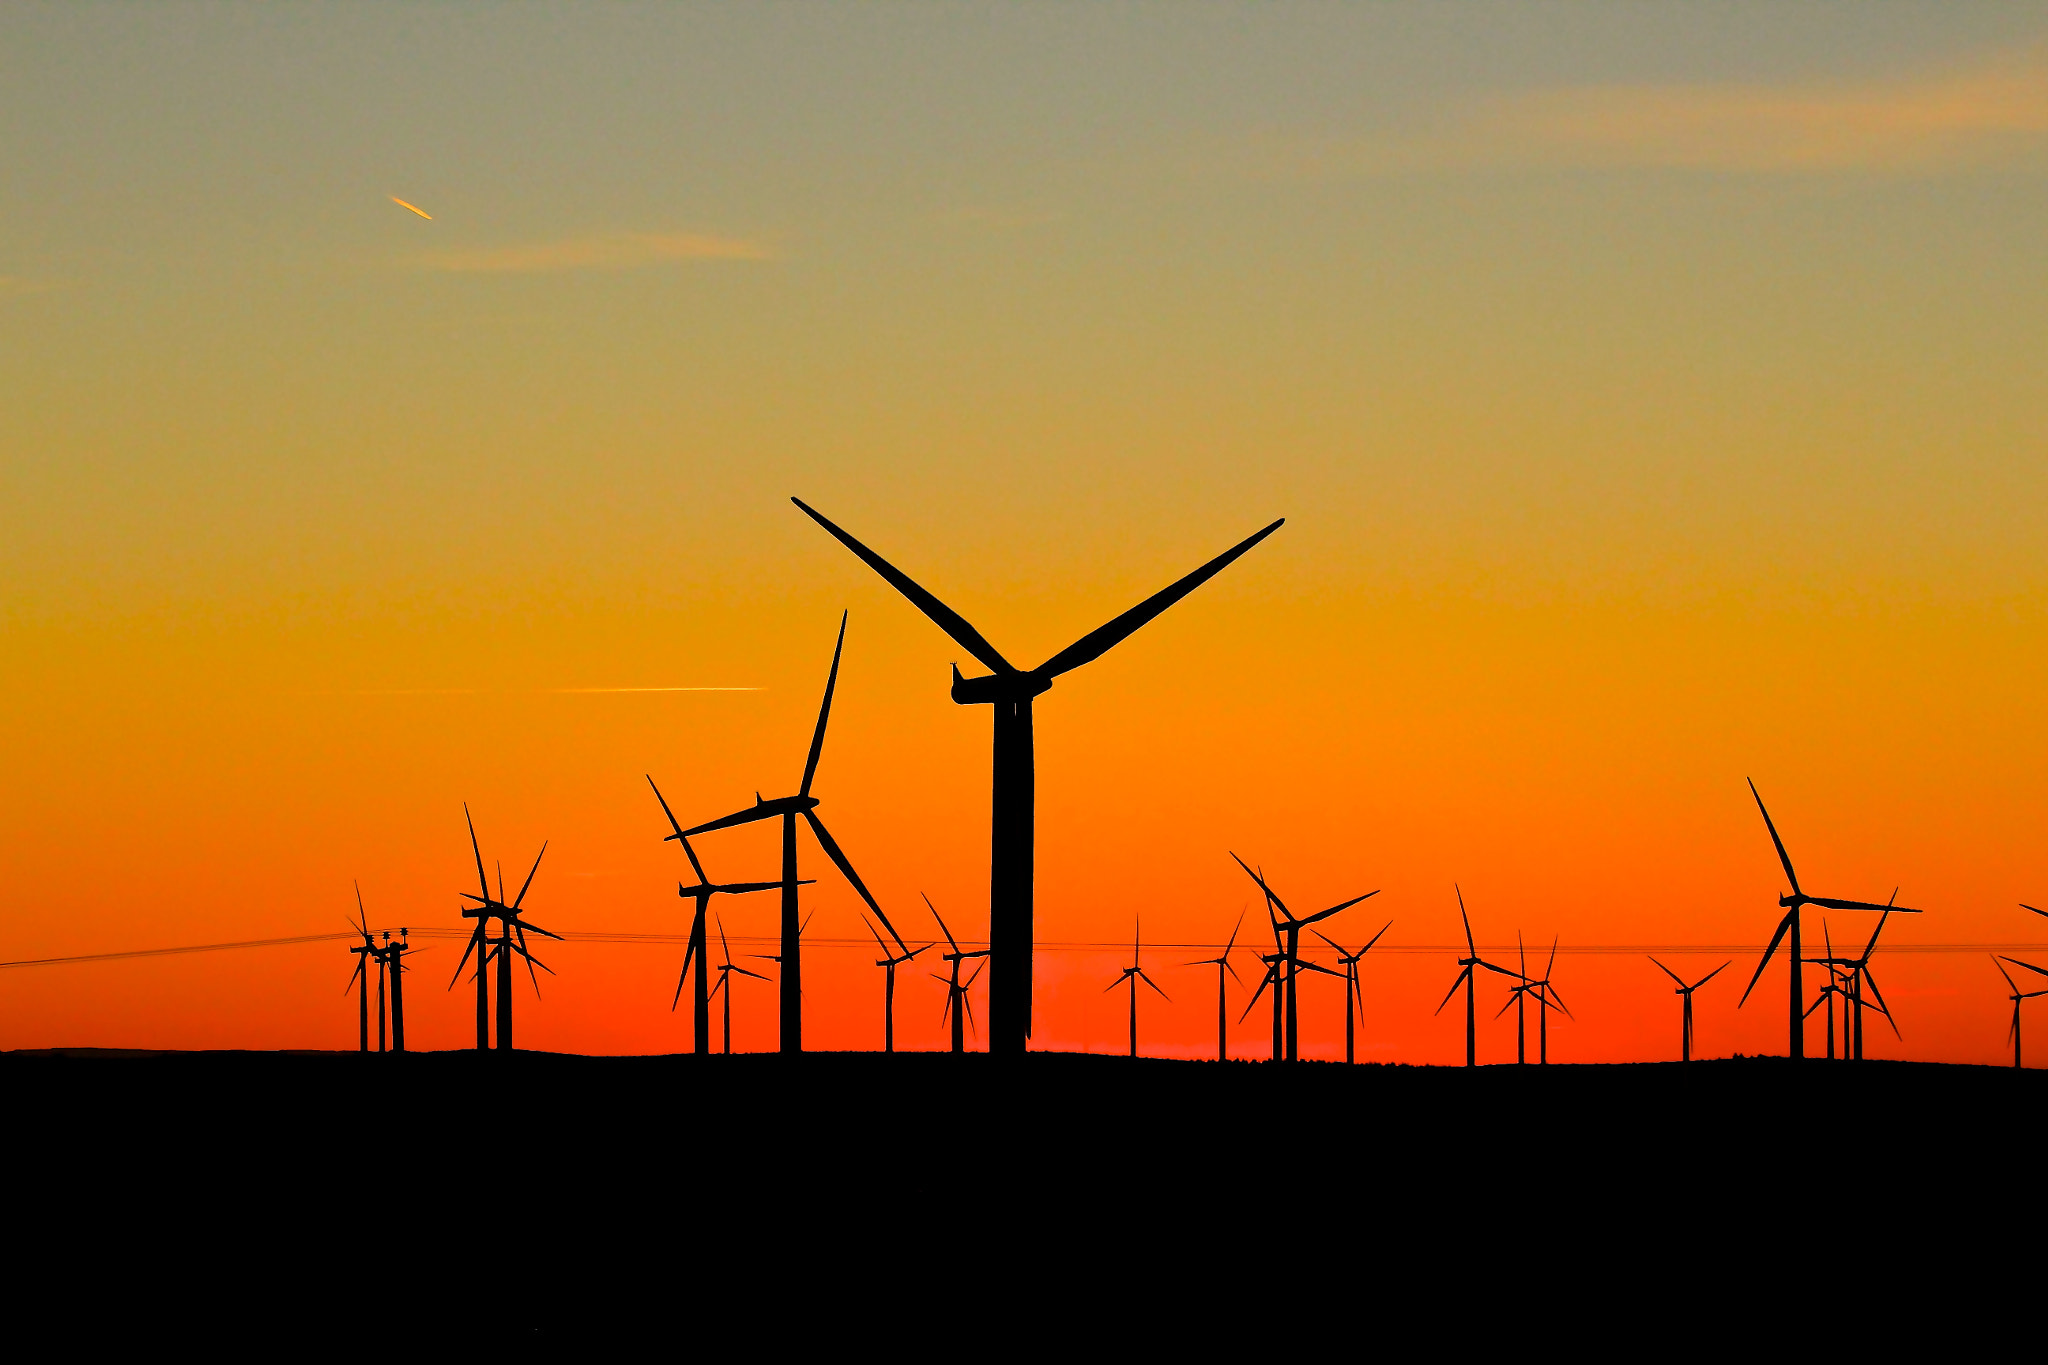 Photograph Windfarm Sunset by Ian McDermaid on 500px